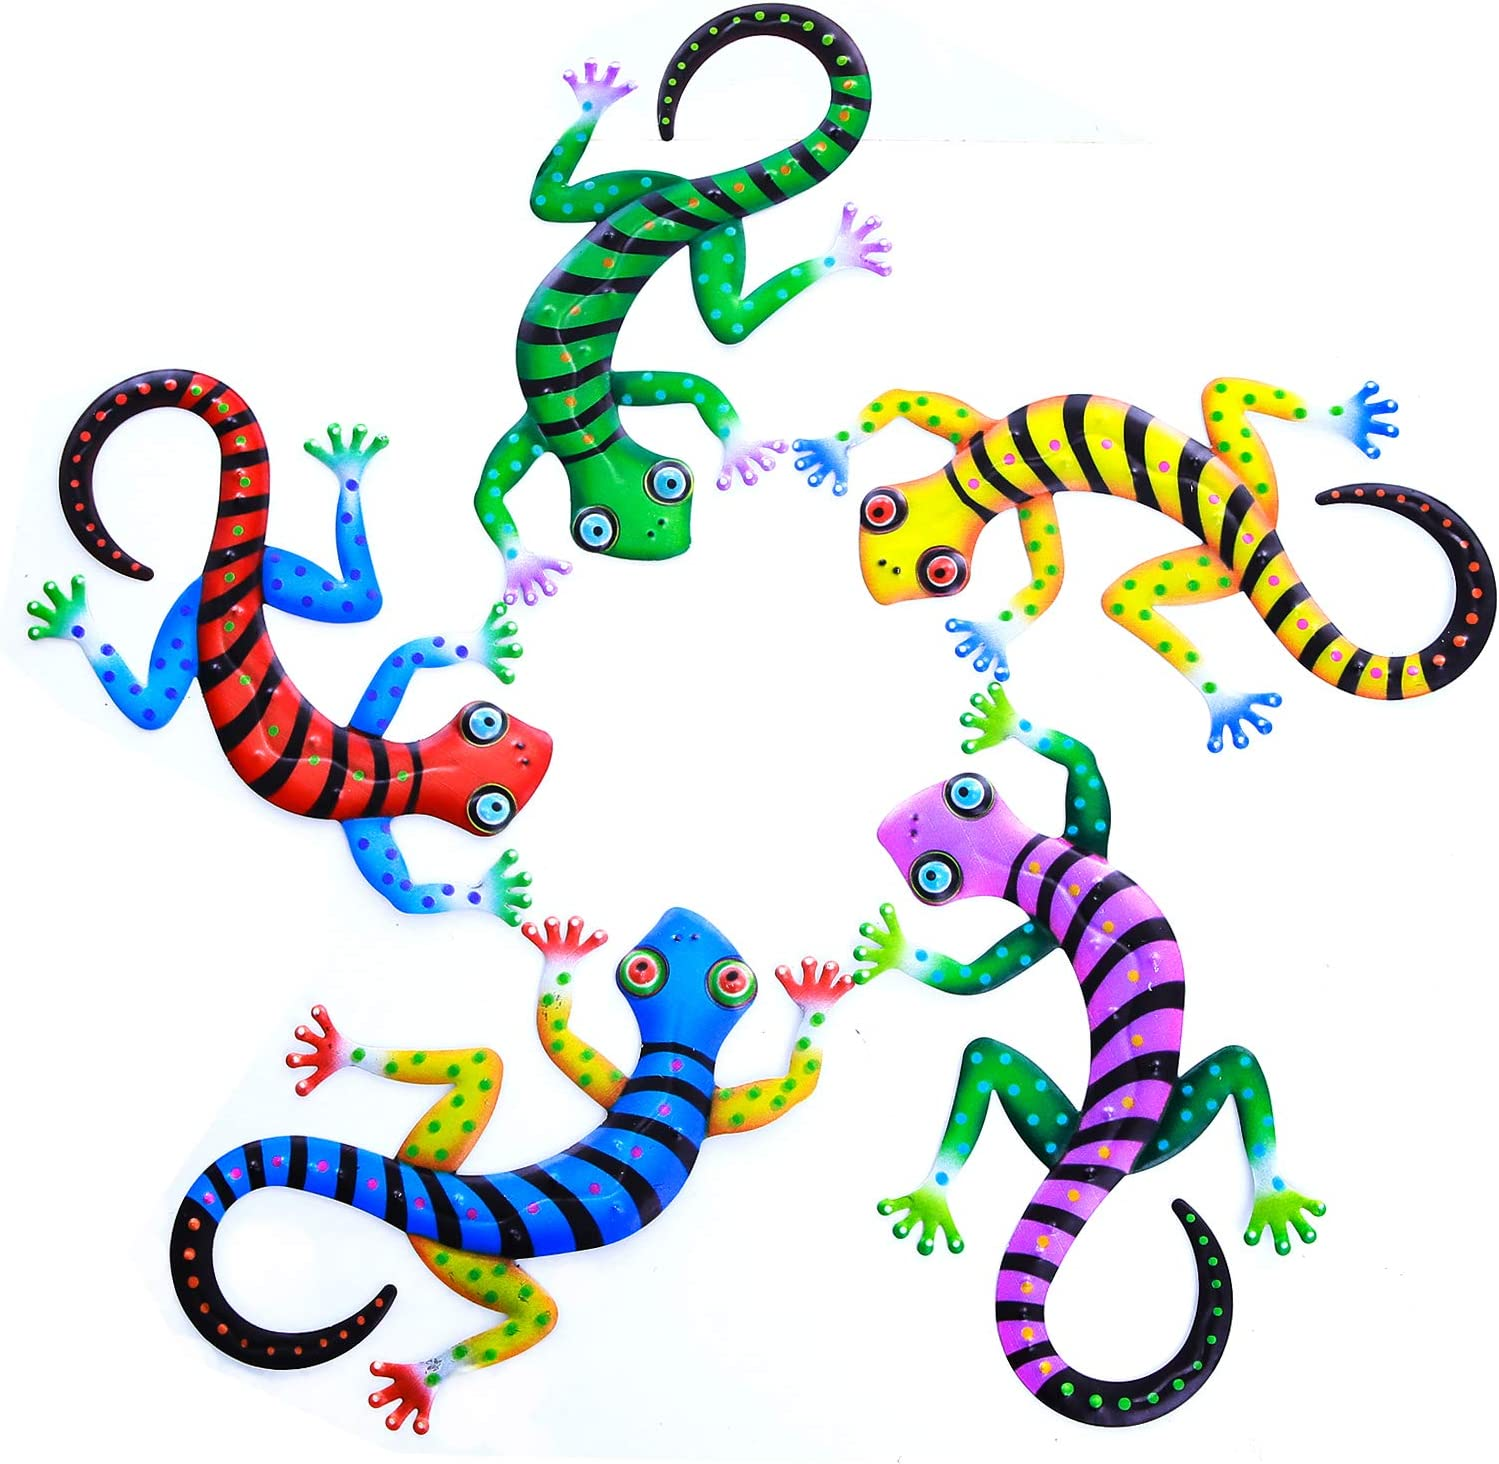 PUENUO Metal Gecko Wall Decor Art Set of 5 Hanging for Outdoor Backyard Porch Home Patio Lawn Fence Decorations Wall Sculptures